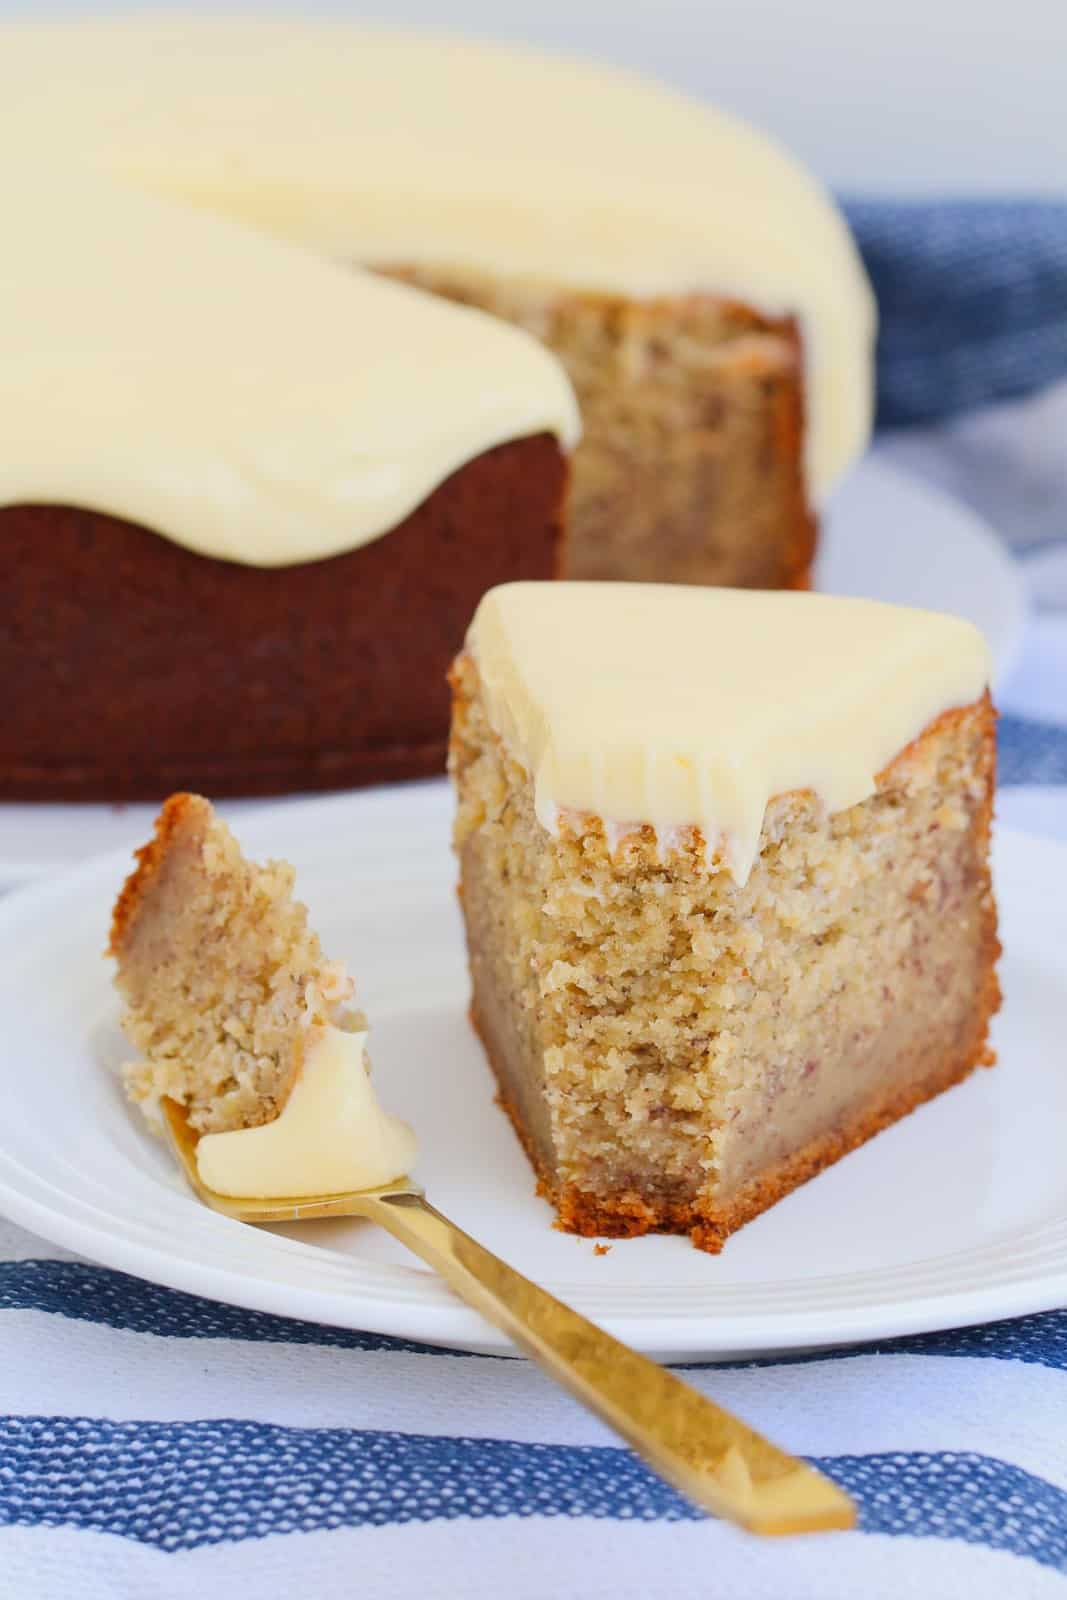 A fork full of cake with frosting next to a slice of banana cake.